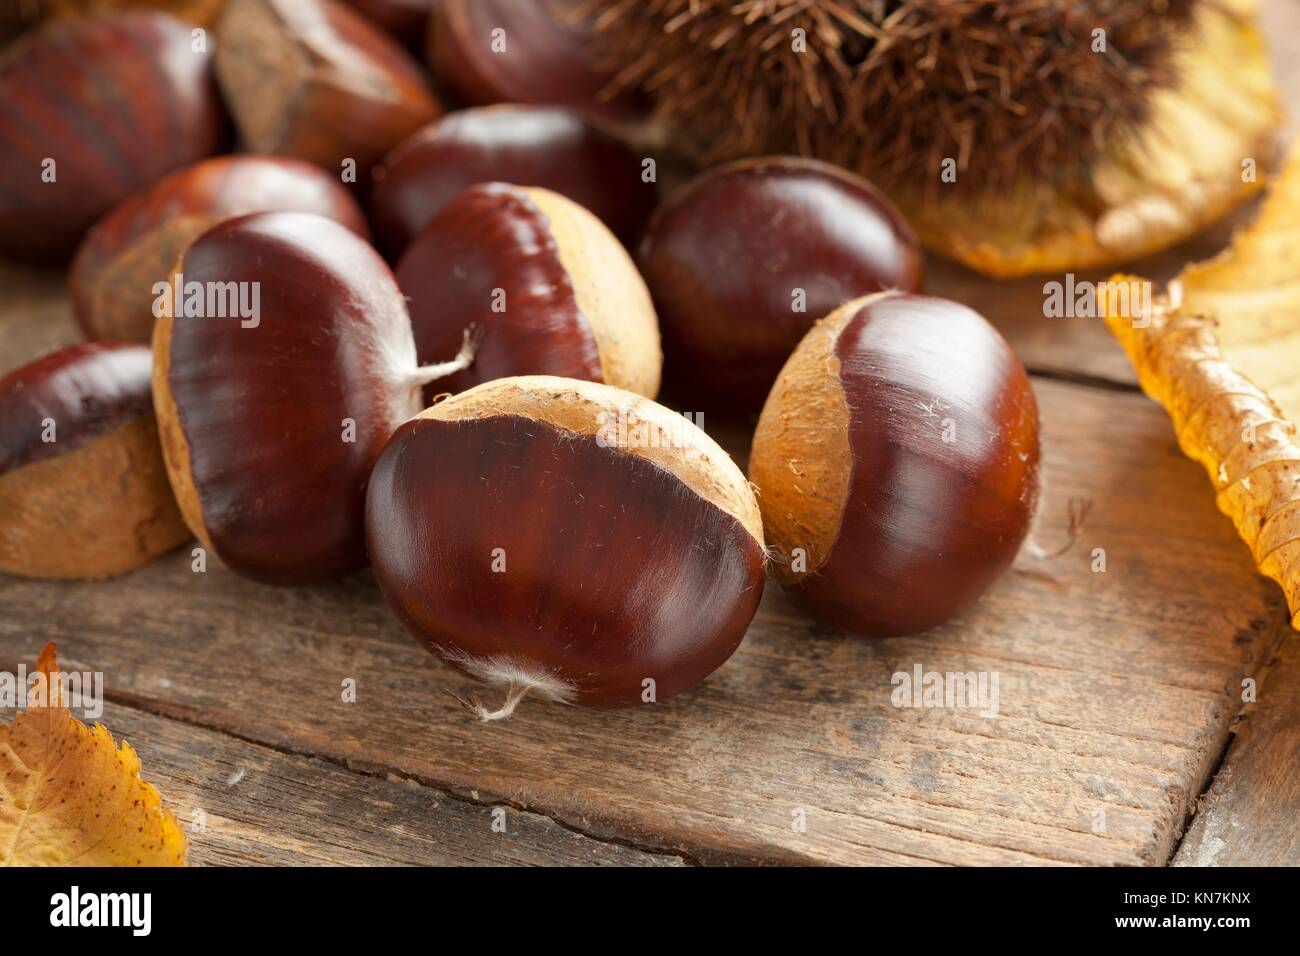 Heap of whole raw sweet chestnuts. - Stock Image